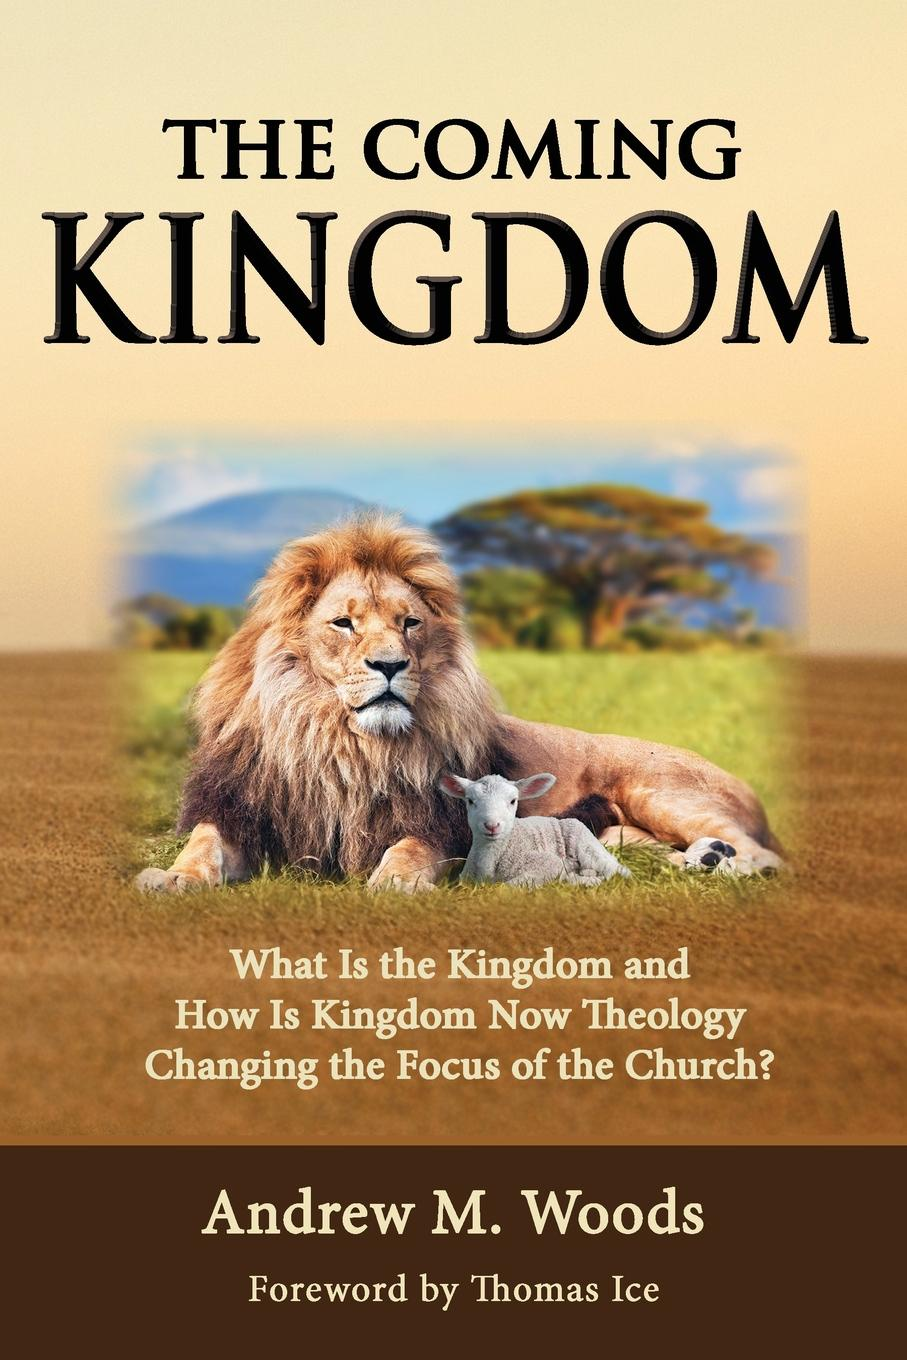 Andrew M. Woods The Coming Kingdom. What Is the Kingdom and How Is Kingdom Now Theology Changing the Focus of the Church. the forbidden kingdom